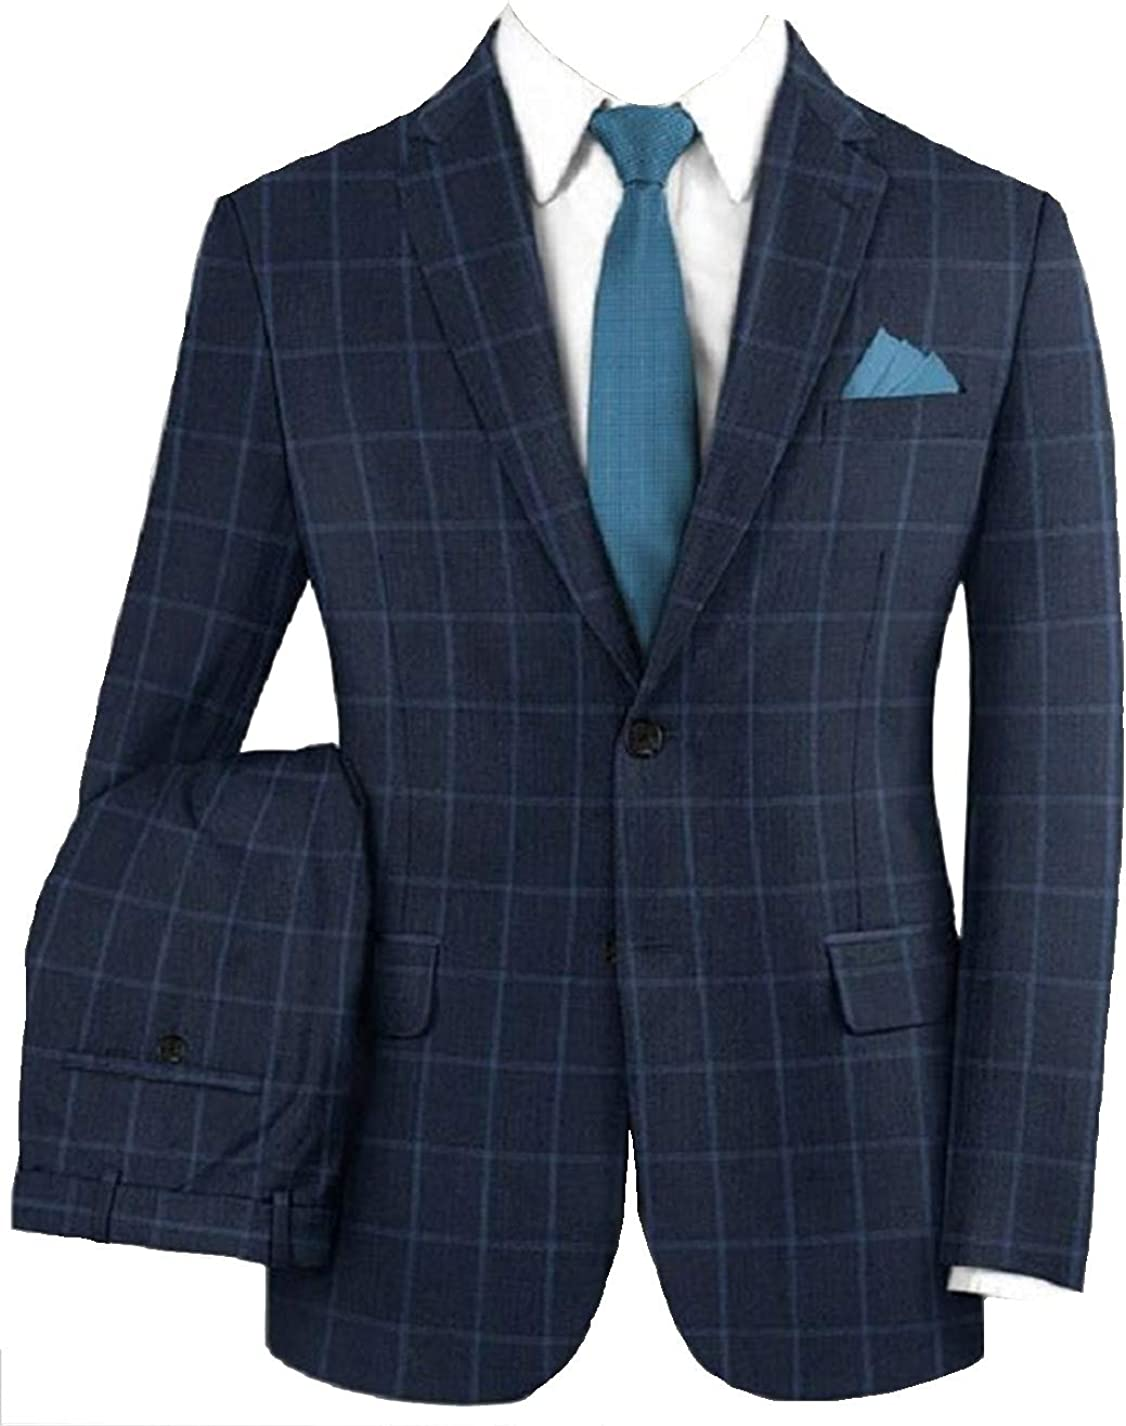 Michealboy Men's Formal Suit 2 Piece Checkered Notched Lapel Single Breasted Office Wear